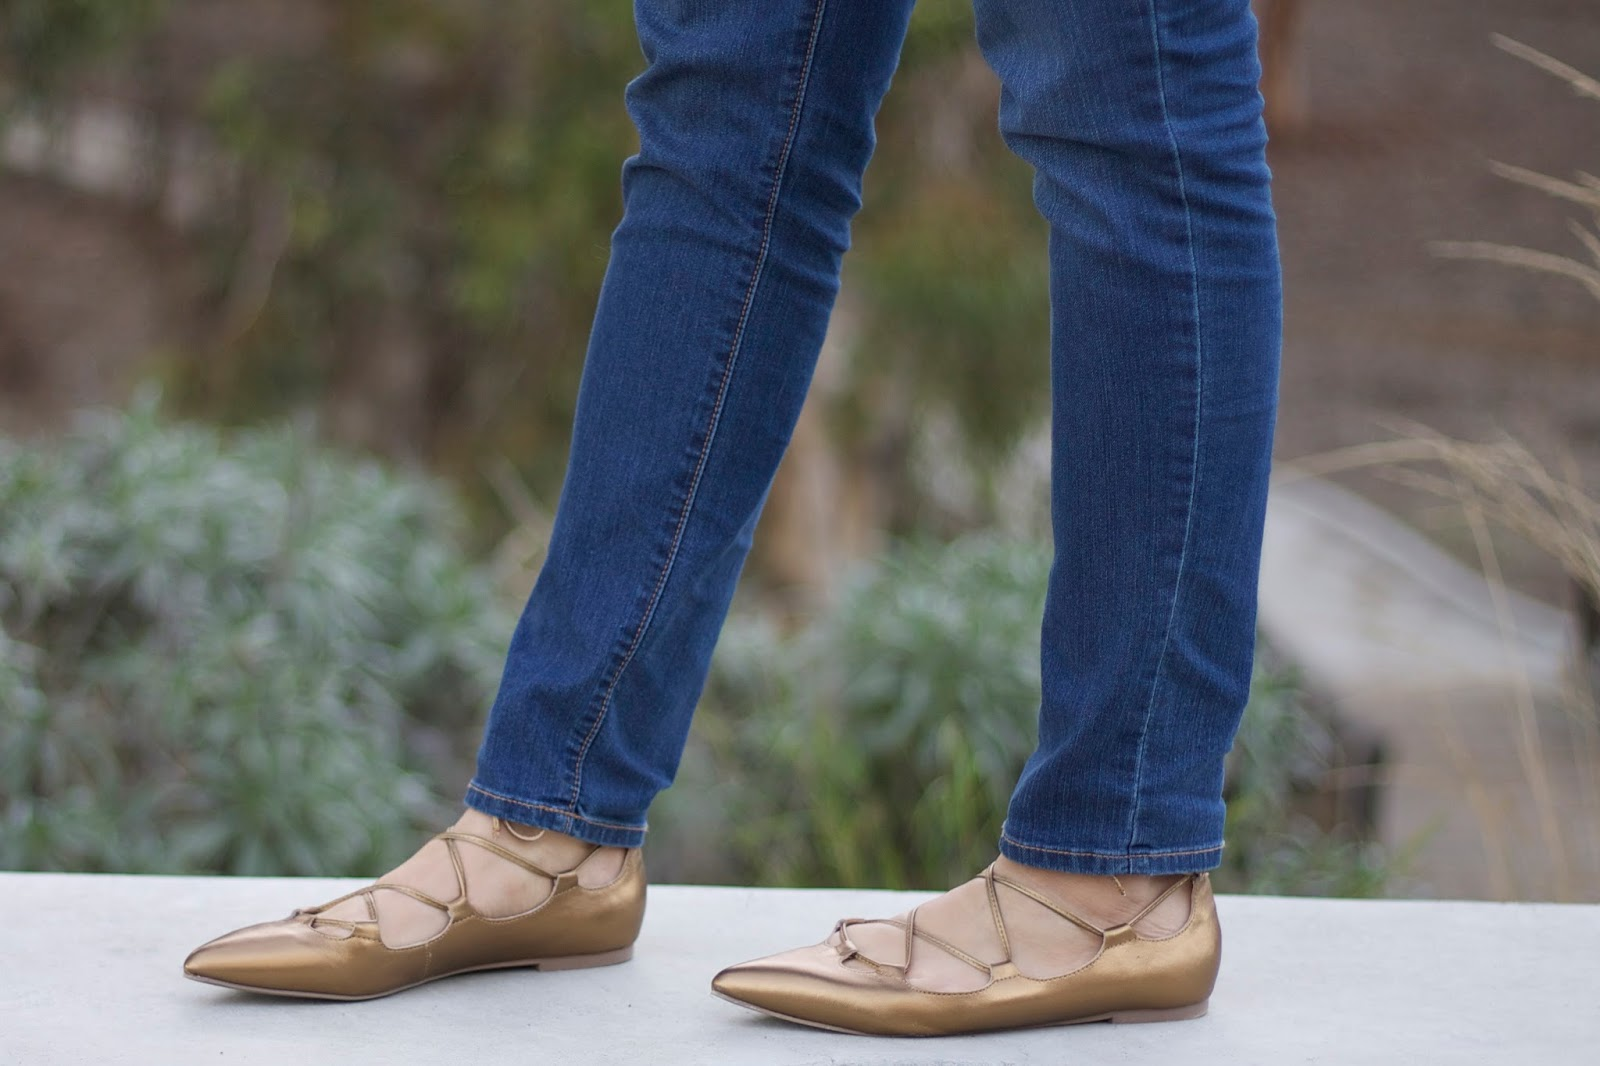 Gap gold shoes, gap metallic flats, metallic lace up flats, lace up flats under $50, old navy jeans